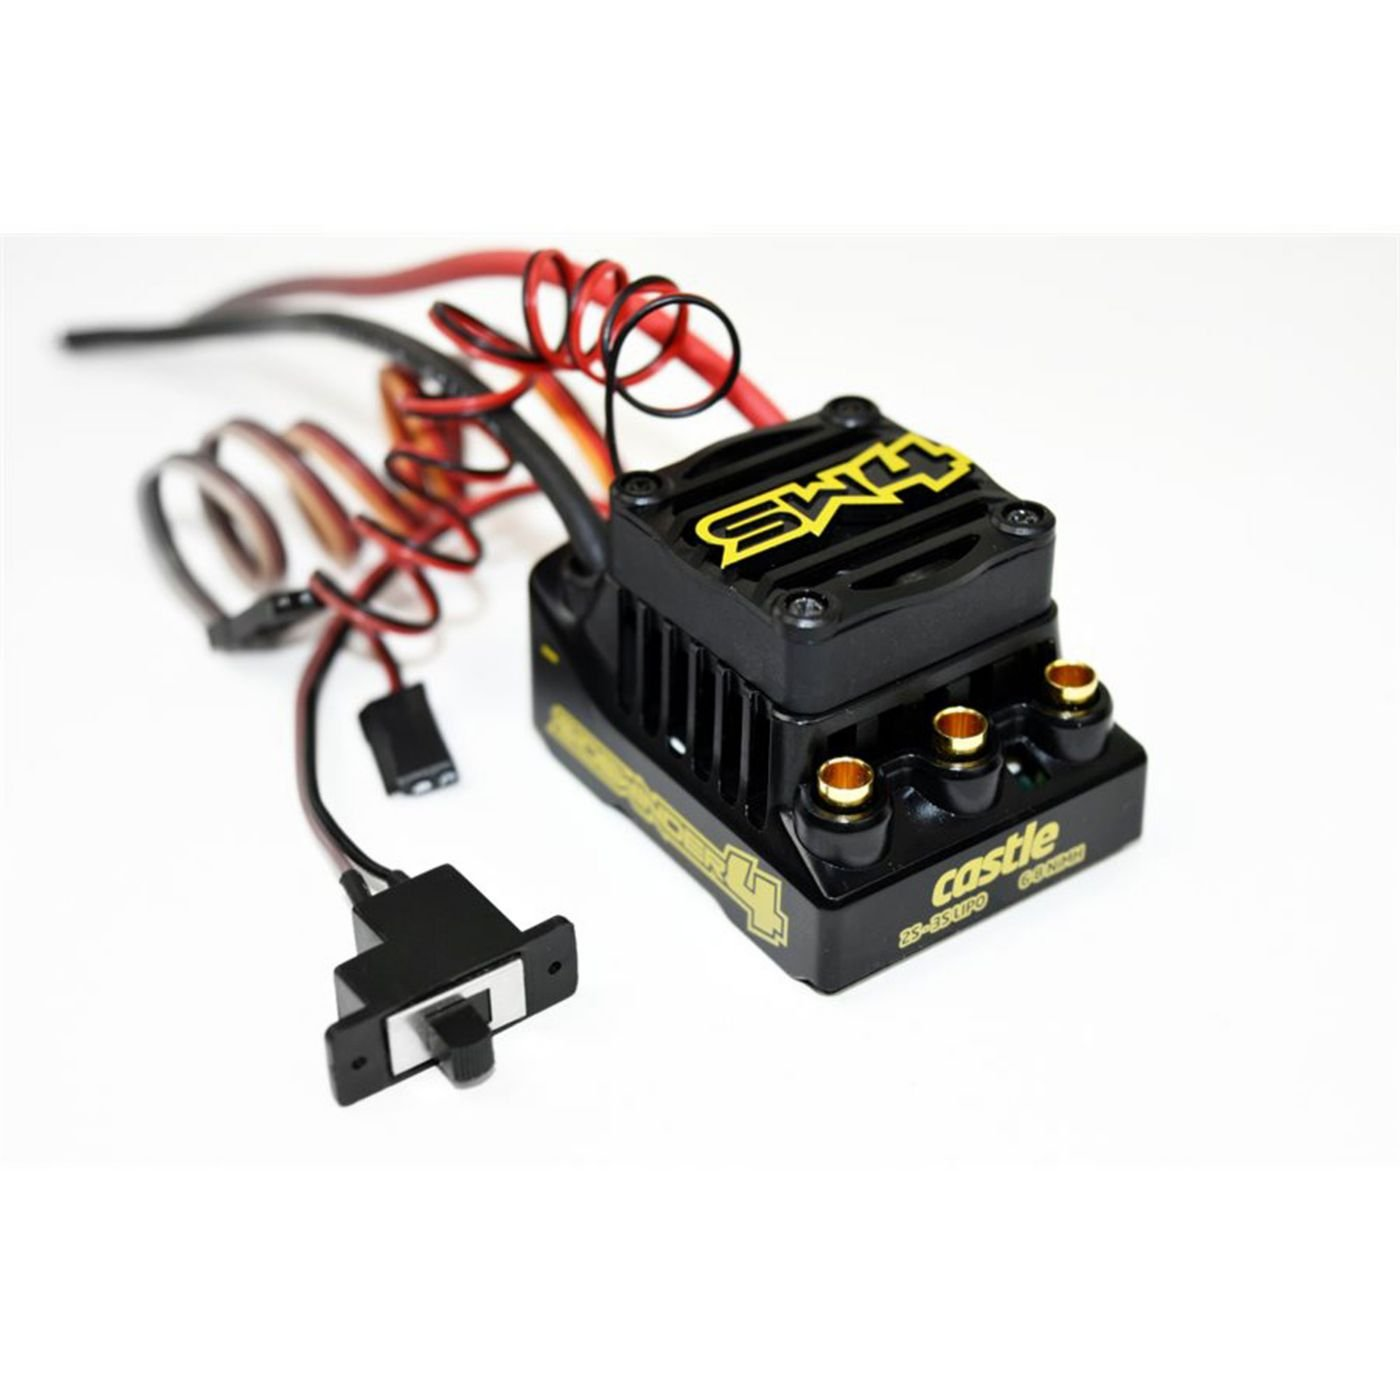 CASTLE CREATION Sidewinder SW4, 12.6V, 2A BEC, WP BRUSHLESS ESC